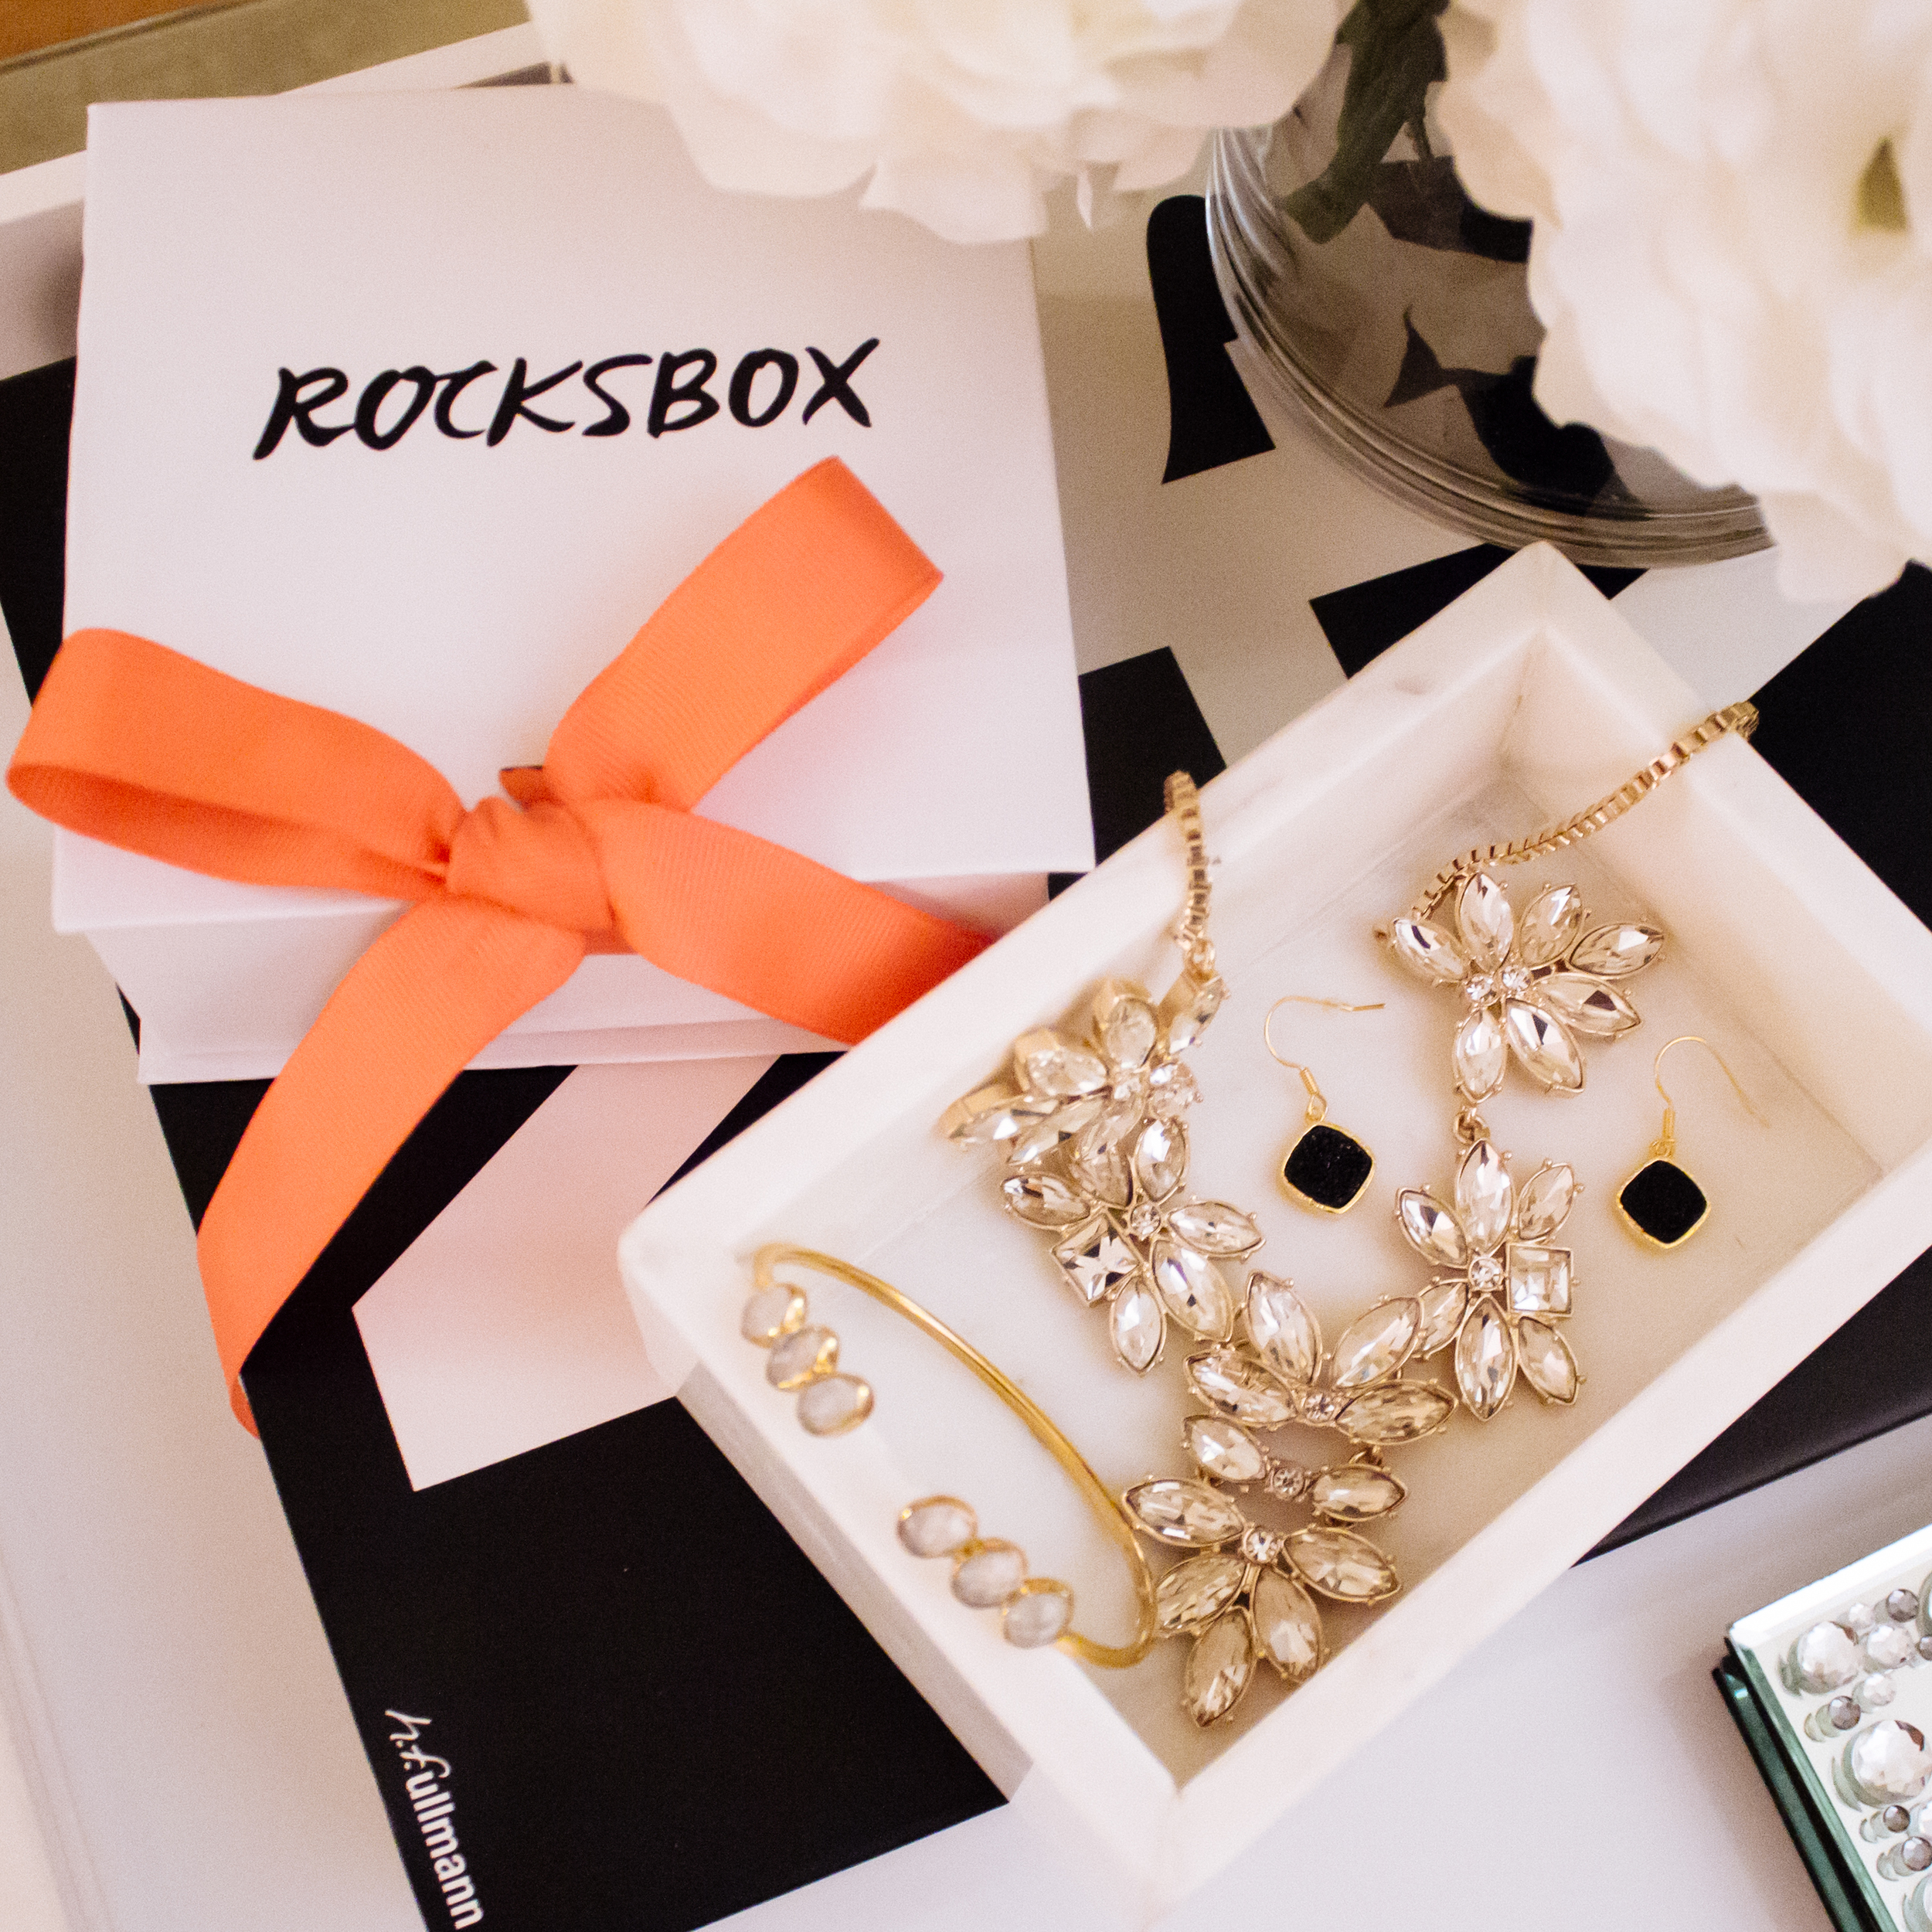 rocksbox is a wonderful way to sample an array of high-quality designer jewelry without having to spend a fortune! Don't like it? you can send it back and exchange them for new pieces. you can even keep them for as long as you'd like. I love the idea, and hope that more stores willimplement this option for people who love luxury goods but don't desire to bear thefinancial burdenof apurchase. what are you waiting for? get your free month of rocksbox delivered to your mailbox free of charge when you use the code:   lycheestylexoxo   (no caps!)at checkout!VIsit   rocksbox.com  to start selecting your pieces!